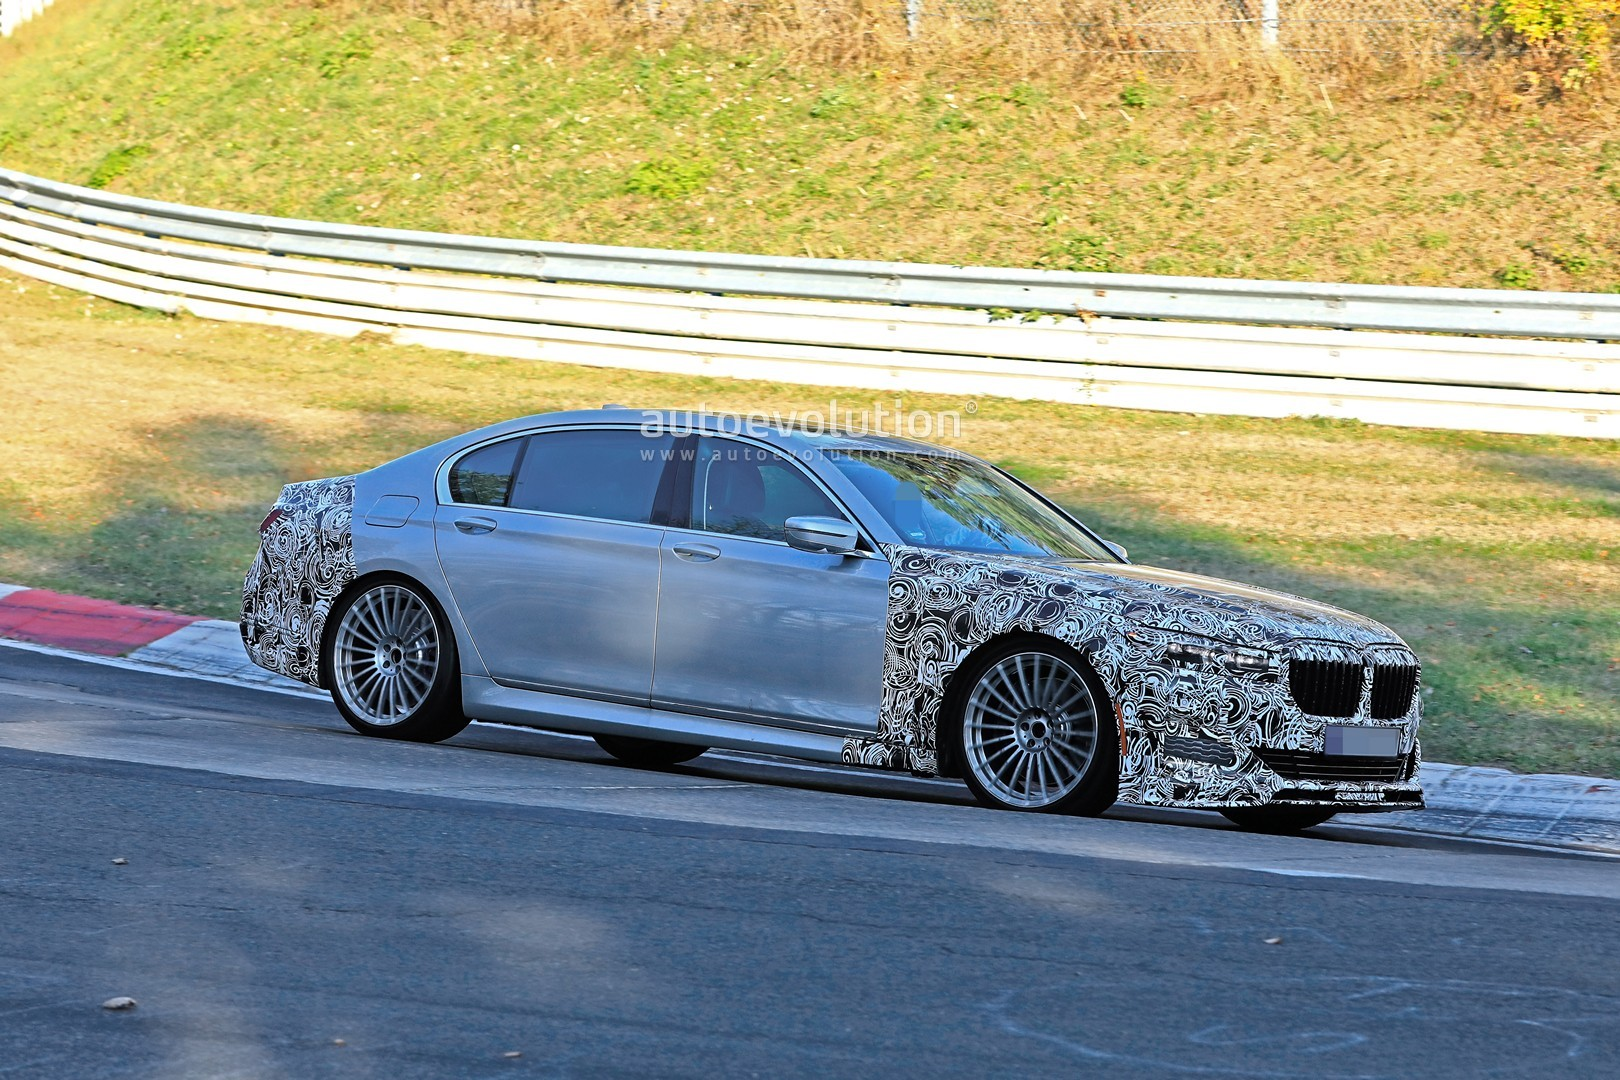 2020 alpina b7 spied in detail, looks more aggressive than